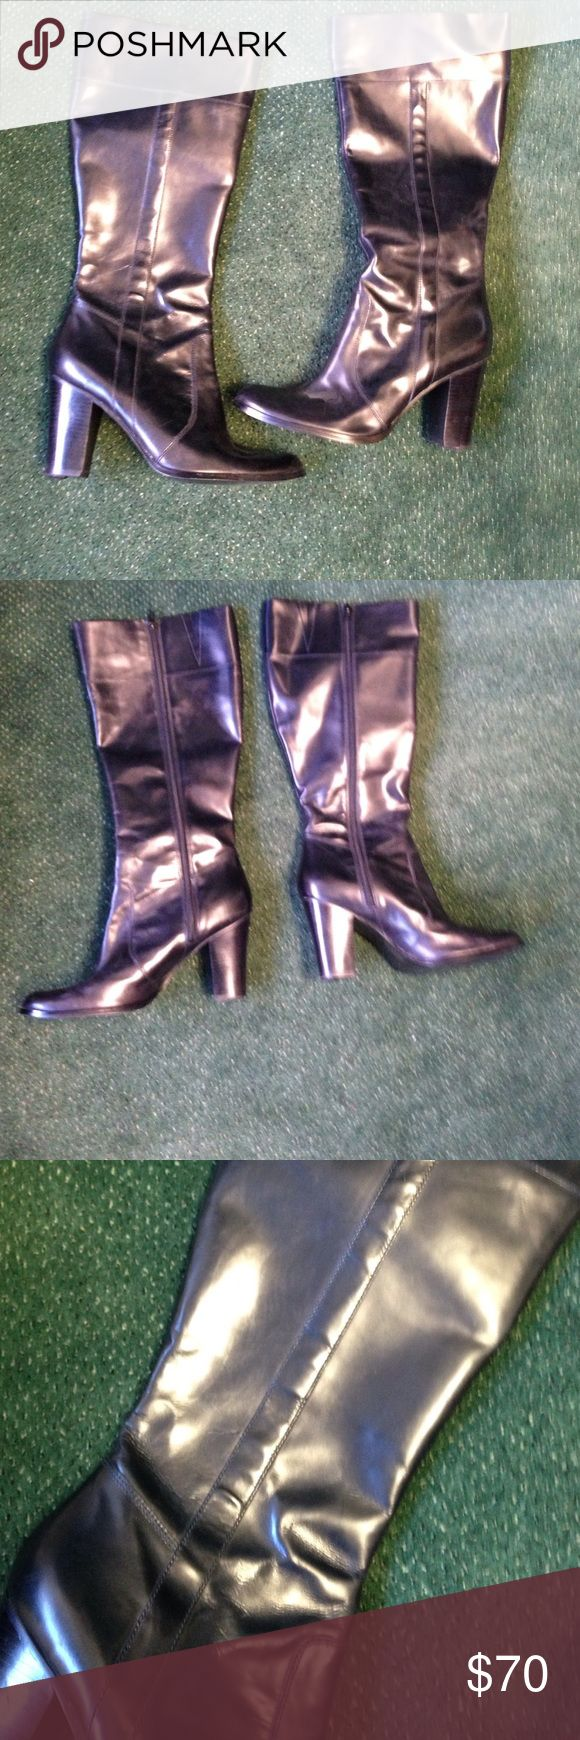 Marc Fischer black long boots sz 11 worn 1x indoor Style is MFTALENT. Leather upper Balance manmade. Heel is 3.5 inches. I put on taps on the heels to prolong the life of the boots. Marc Fisher Shoes Combat & Moto Boots